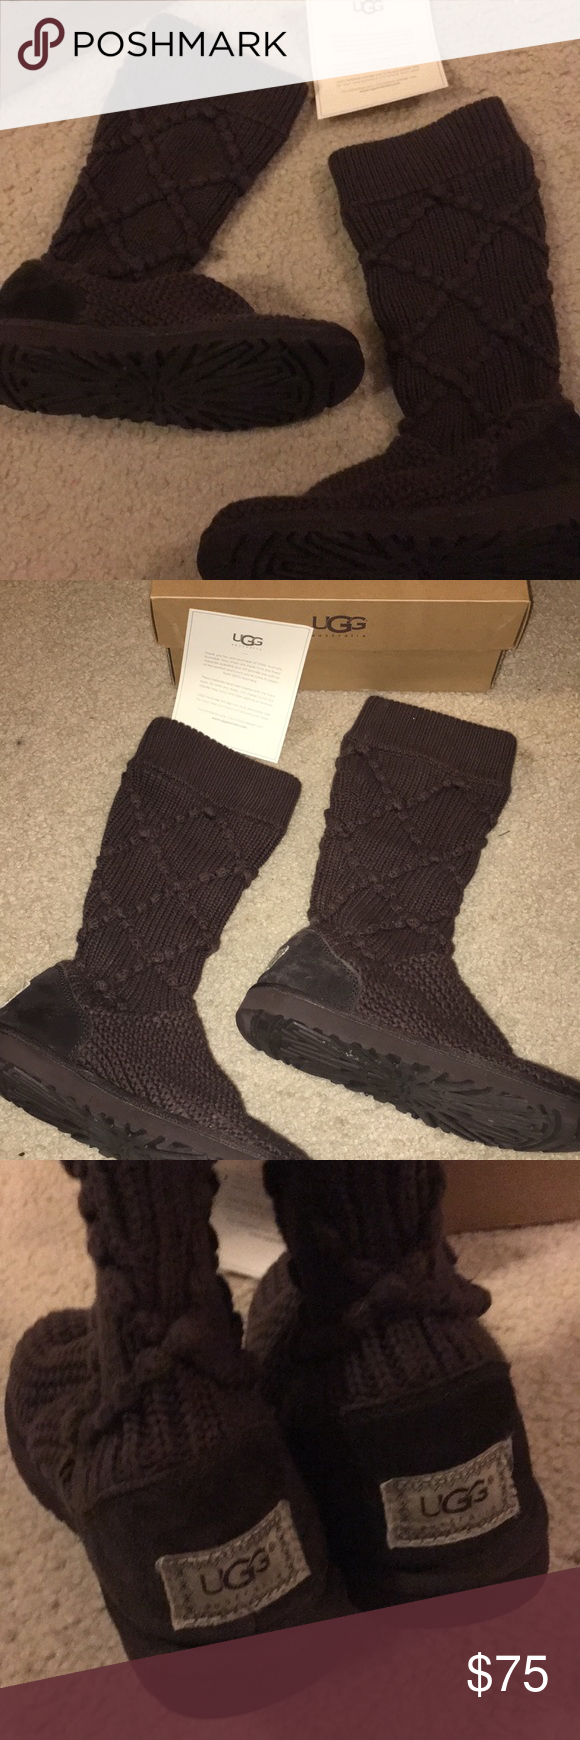 eb902ad4a37 UGG brown argyle knit boots! Ugg brown argyle knit boots in great ...